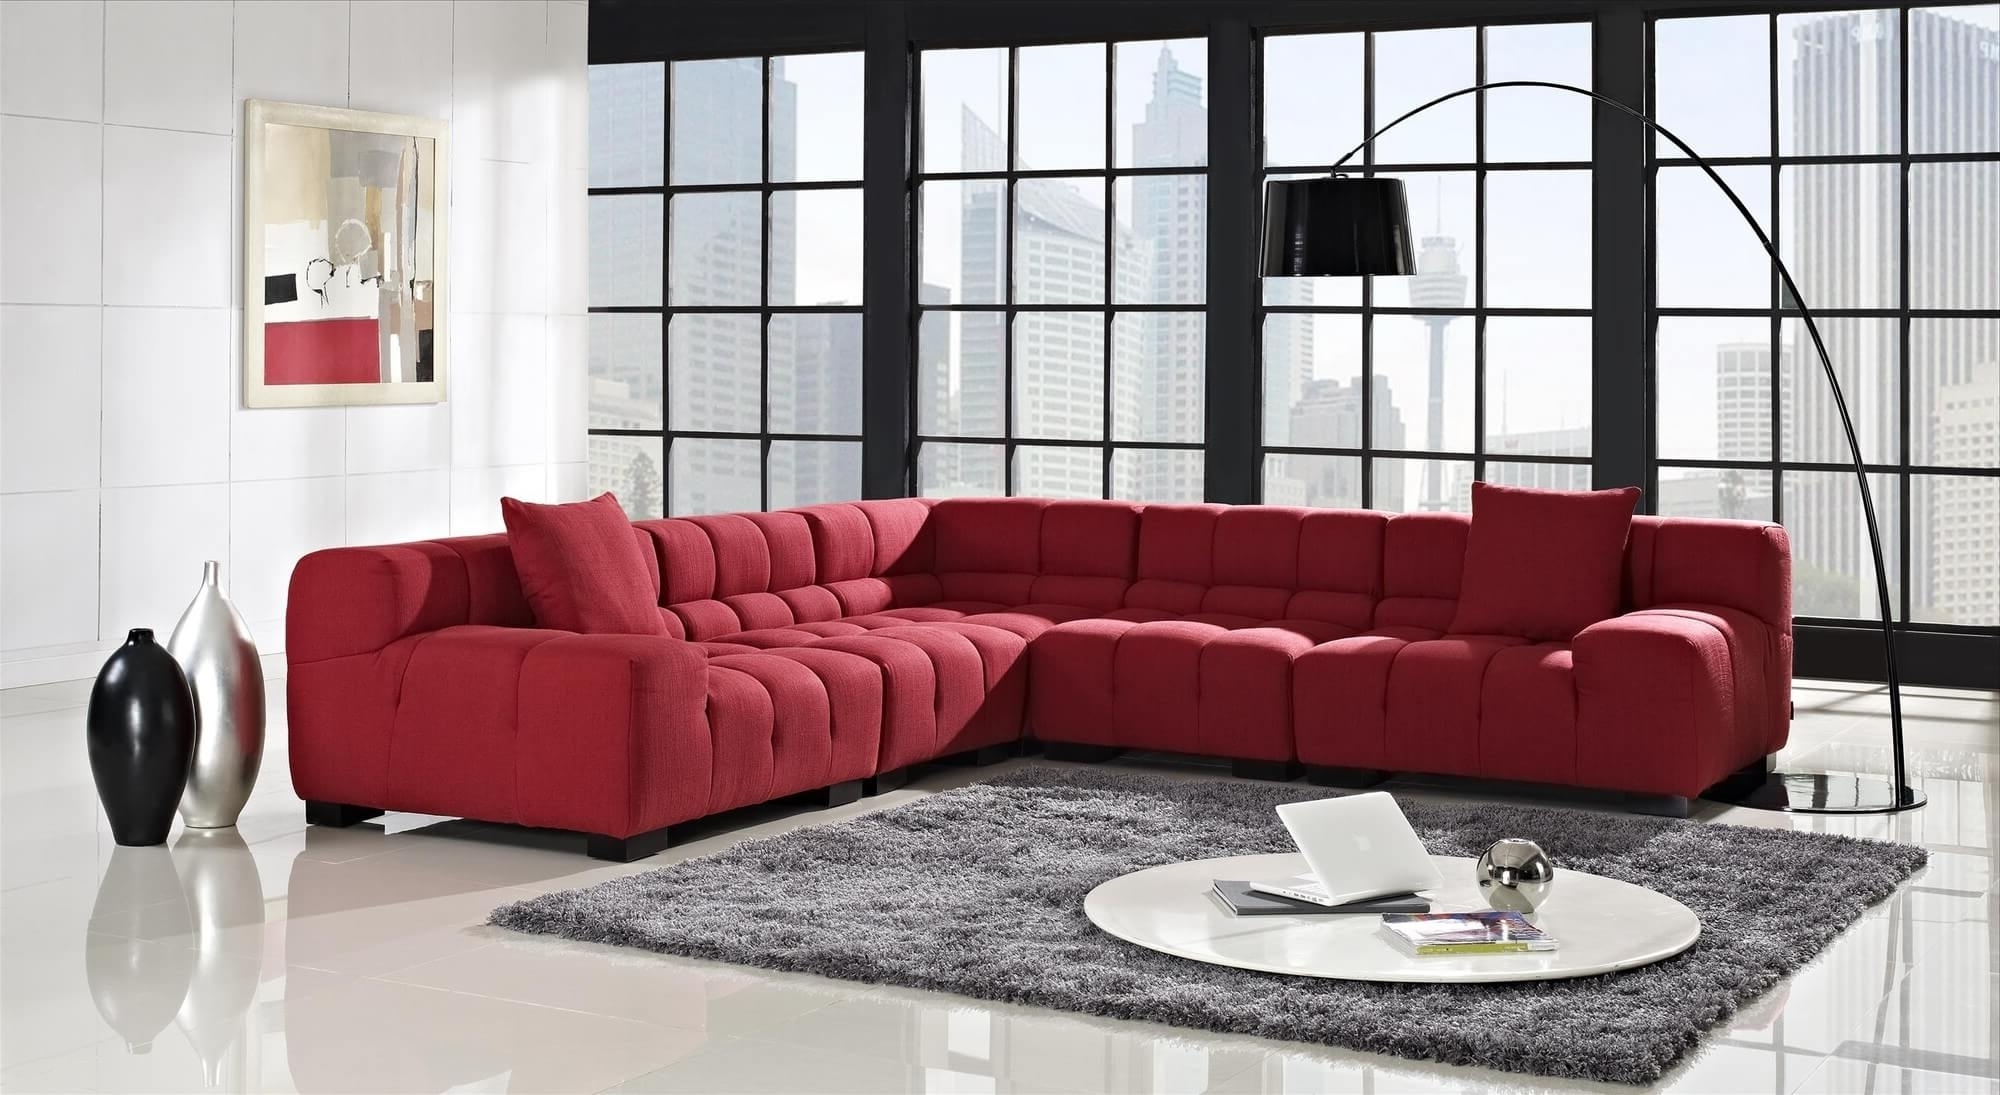 Favorite Collection Firm Sectional Sofa – Buildsimplehome With Western Style Sectional Sofas (View 3 of 15)